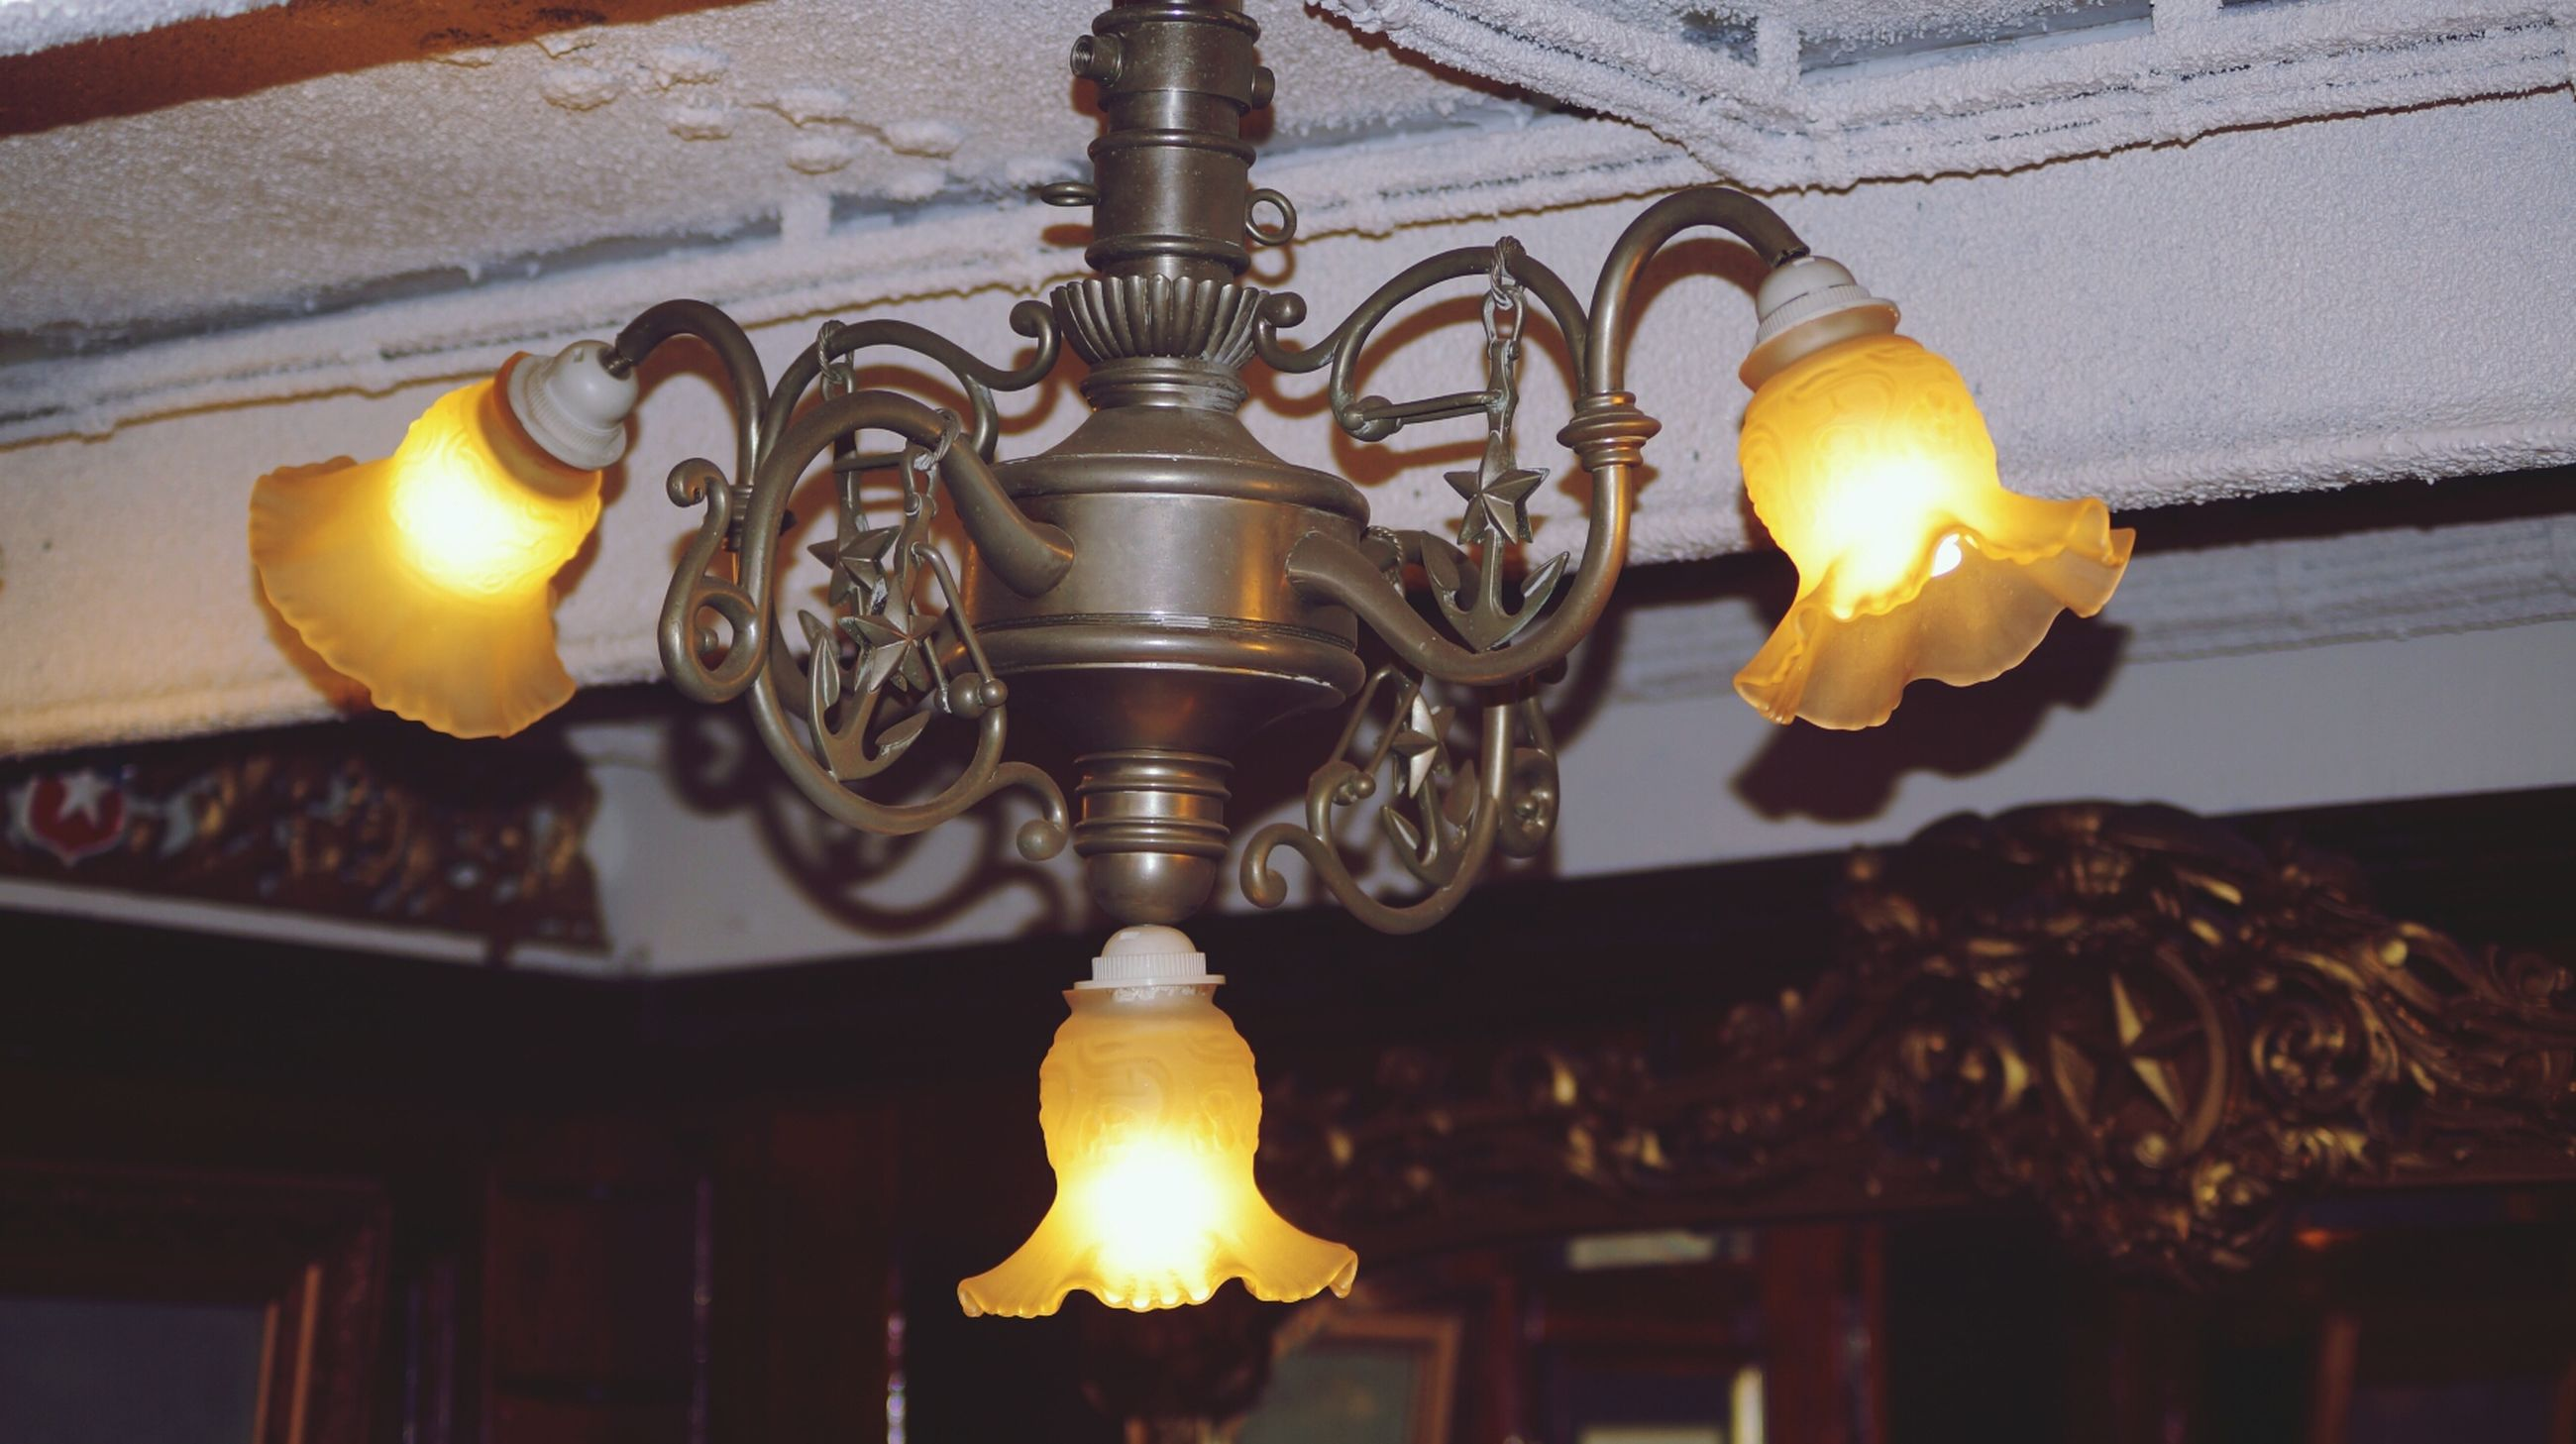 illuminated, indoors, lighting equipment, glowing, electric lamp, hanging, flame, burning, lit, candle, low angle view, light - natural phenomenon, electricity, lantern, electric light, light bulb, lamp, decoration, fire - natural phenomenon, heat - temperature